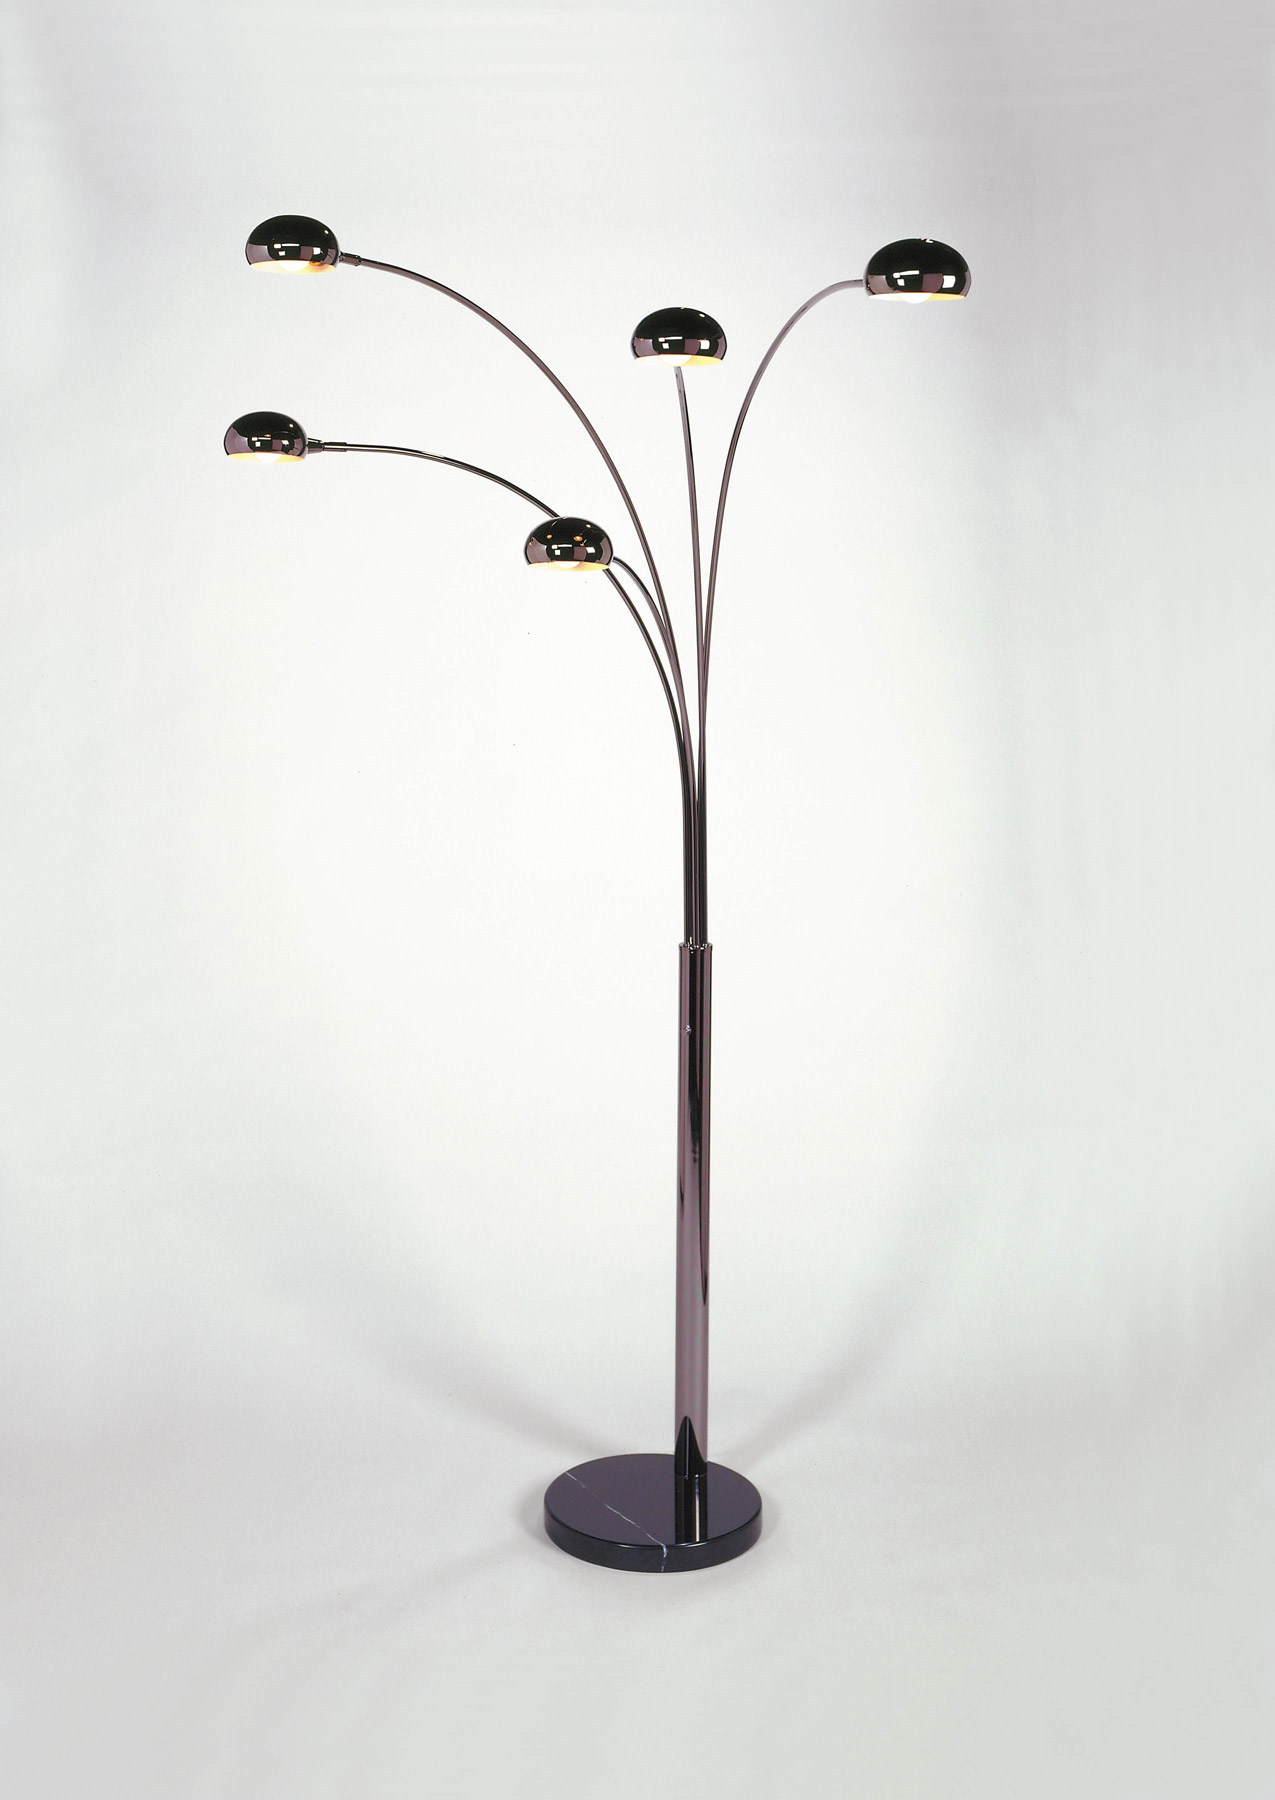 Nova Lighting 4035 Mushroom 5 Light Arc Floor Lamp